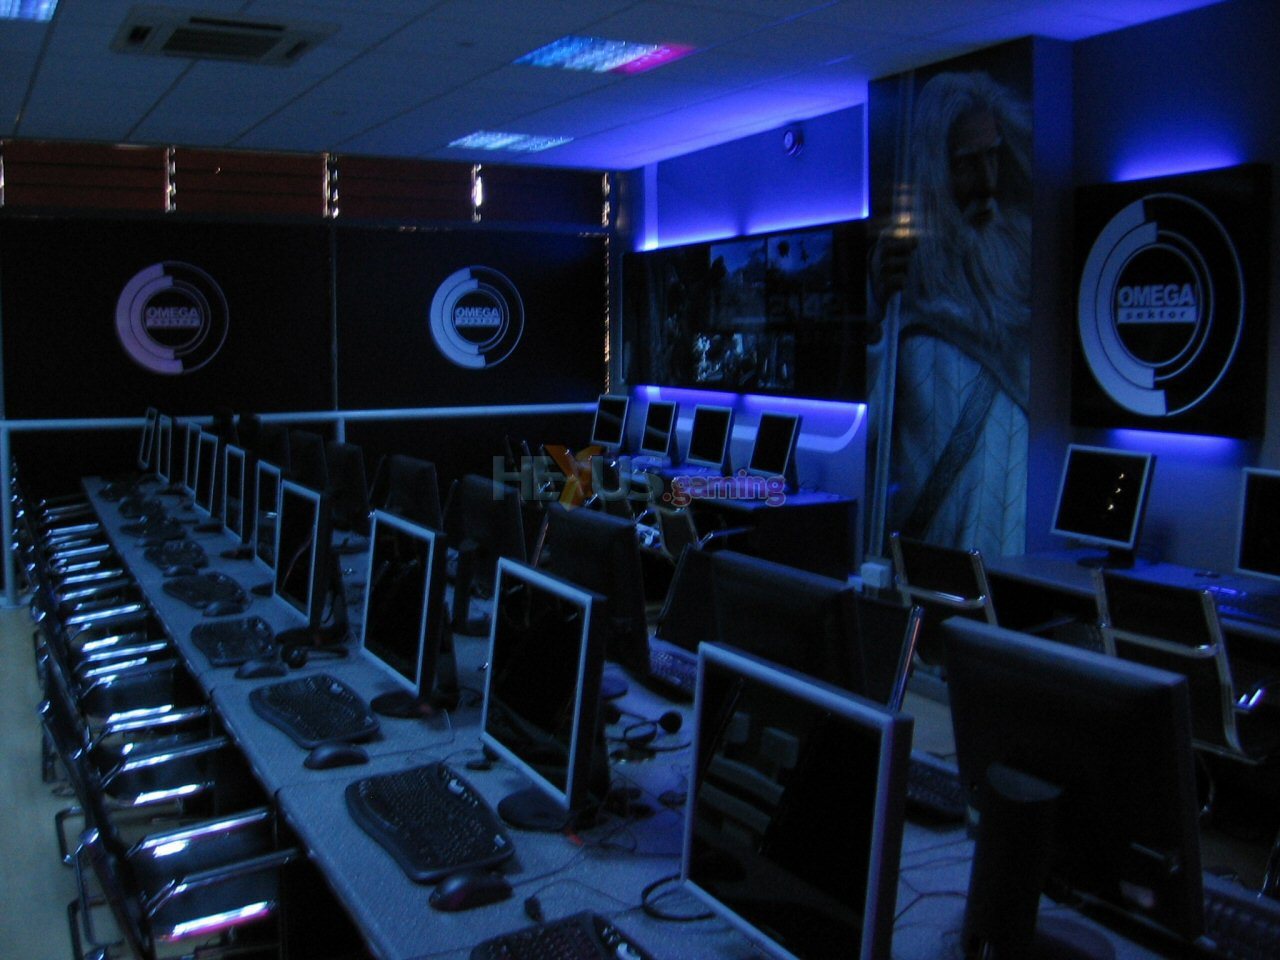 lan gaming cafe sydney - photo#9